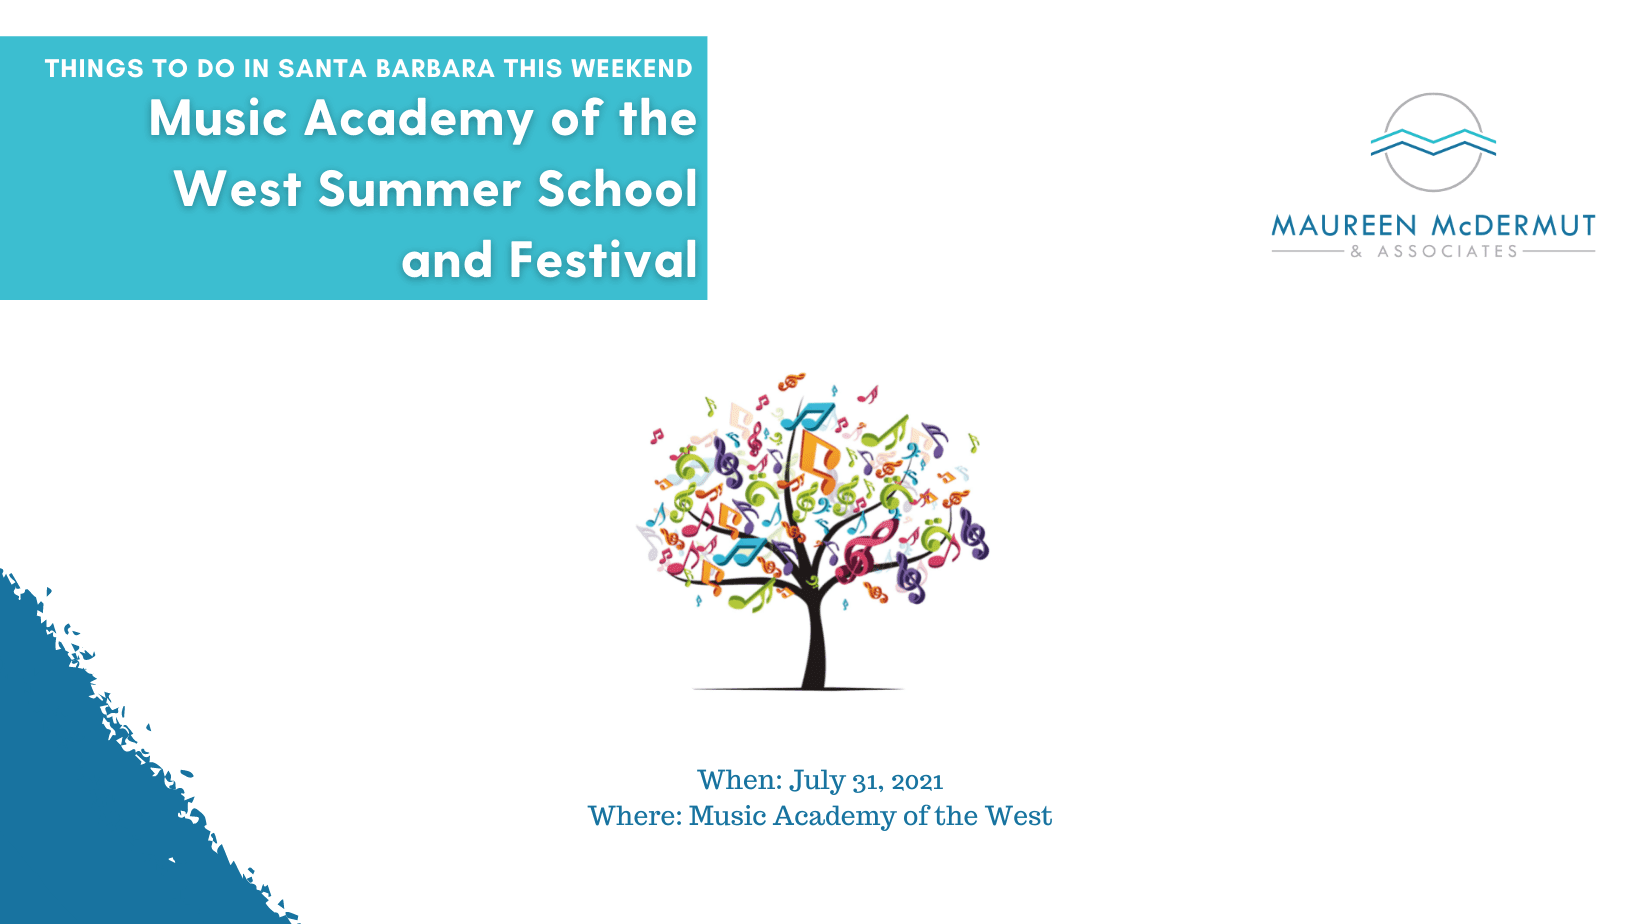 Music Academy of the West Summer School and Festival image